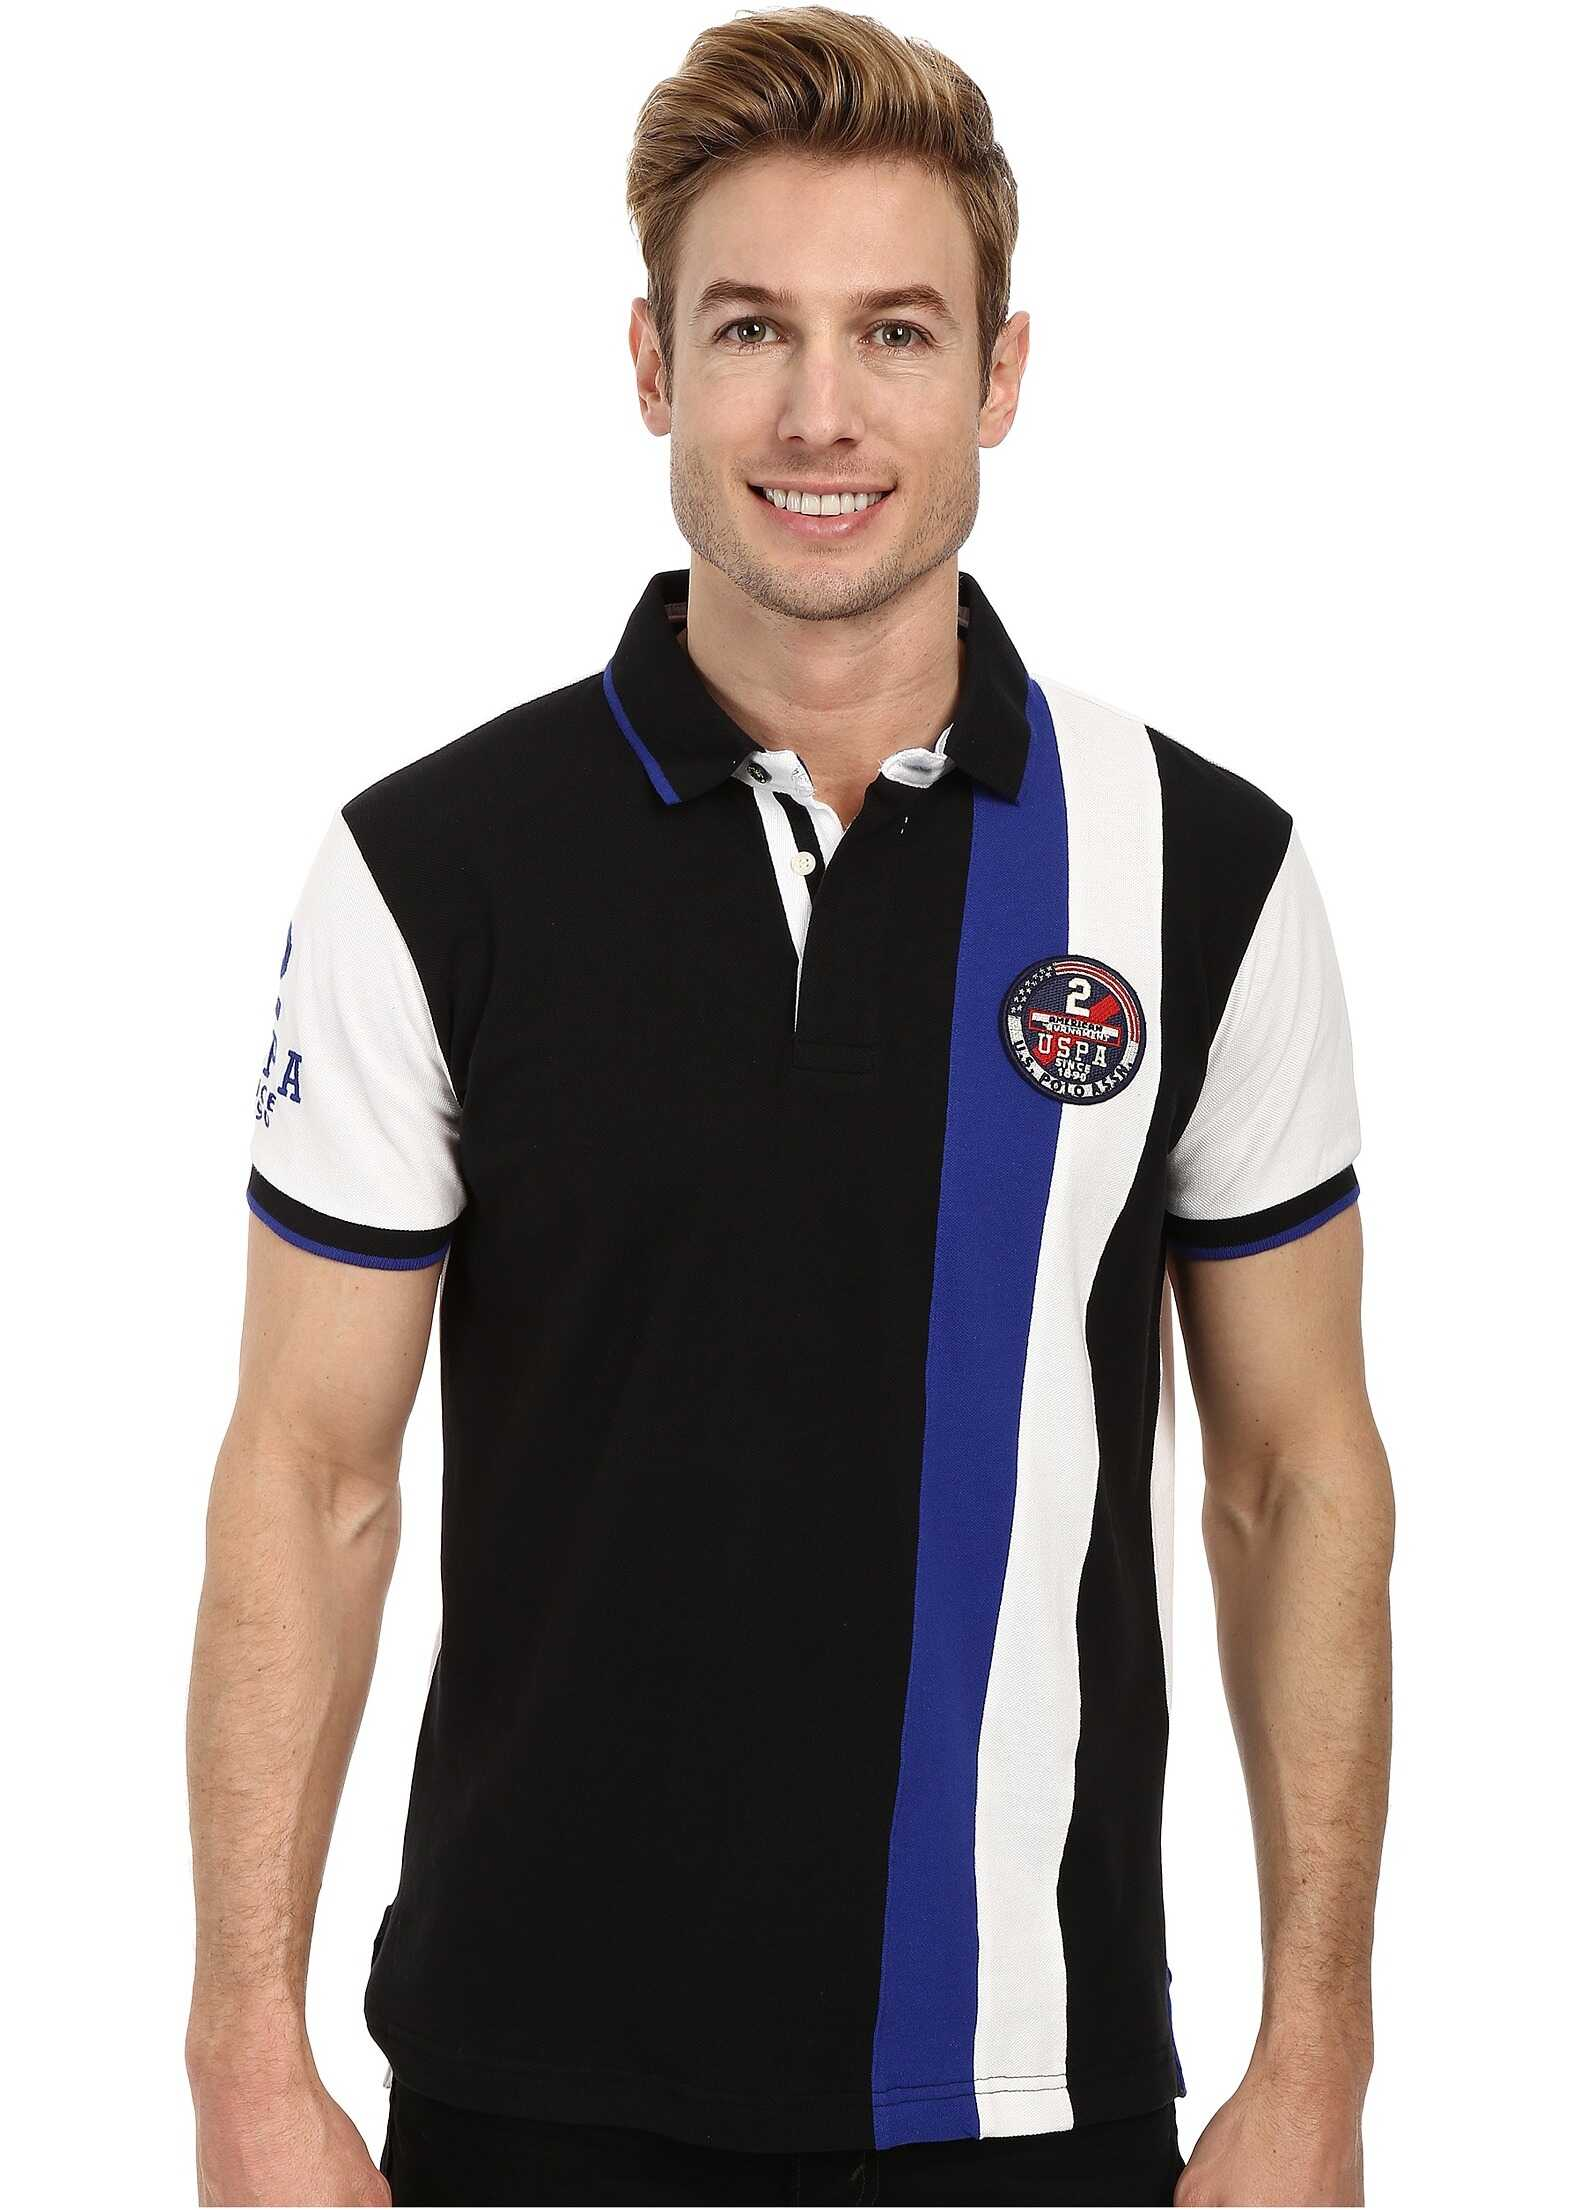 U.S. POLO ASSN. Vertical Stripes Color Block Pique Polo Black